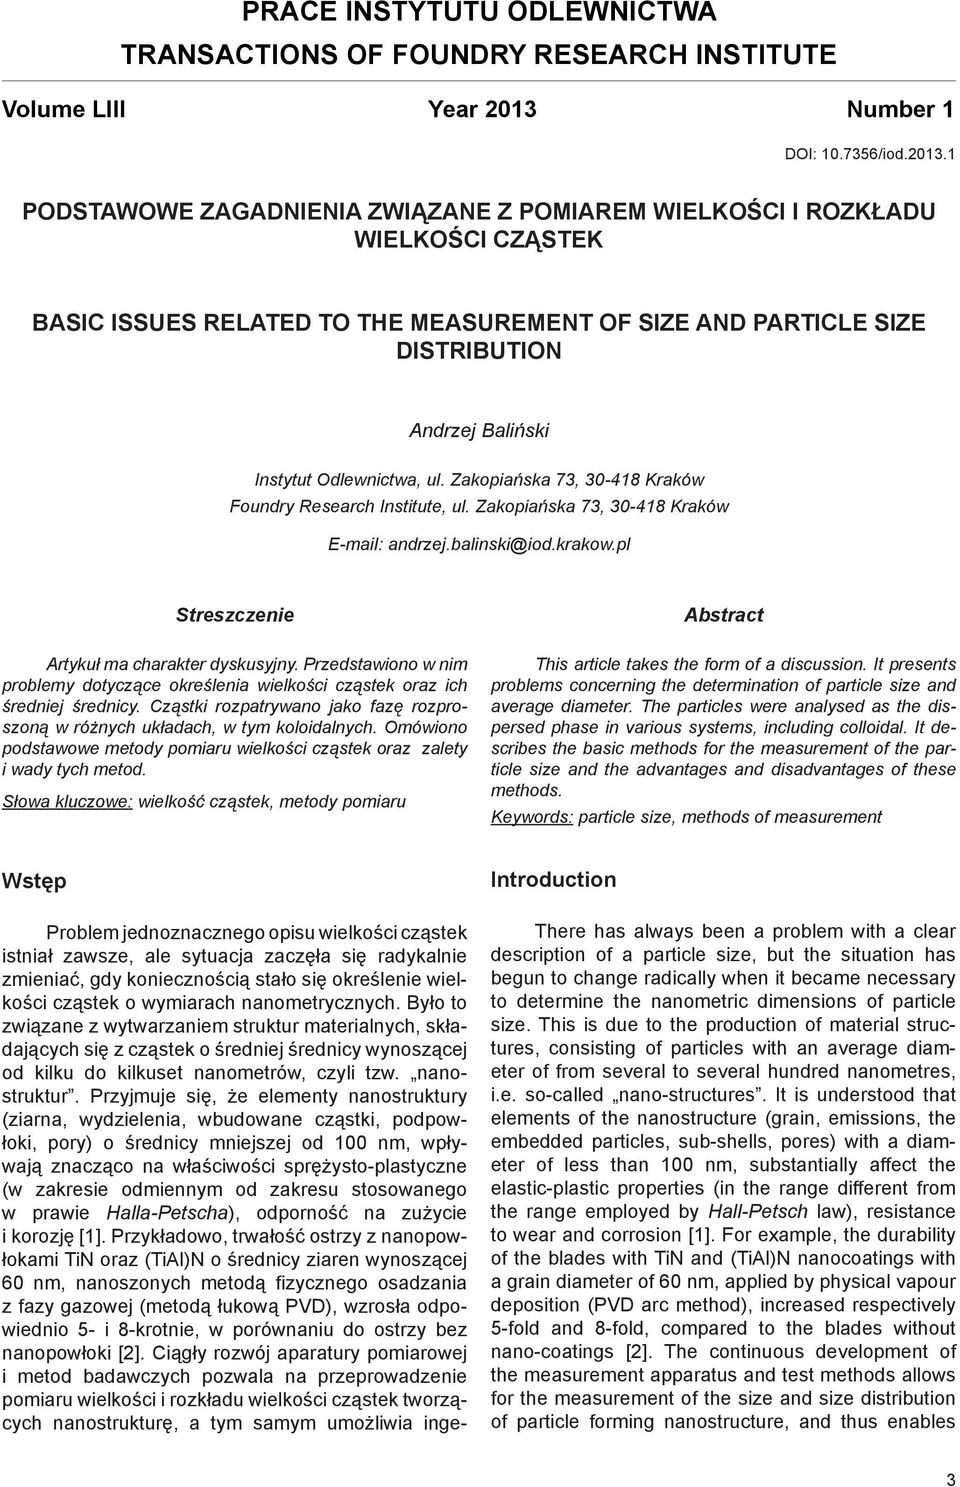 1 Podstawowe zagadnienia związane z pomiarem wielkości i rozkładu wielkości cząstek Basic issues related to the measurement of SIZE and particle size distribution Andrzej Baliński Instytut